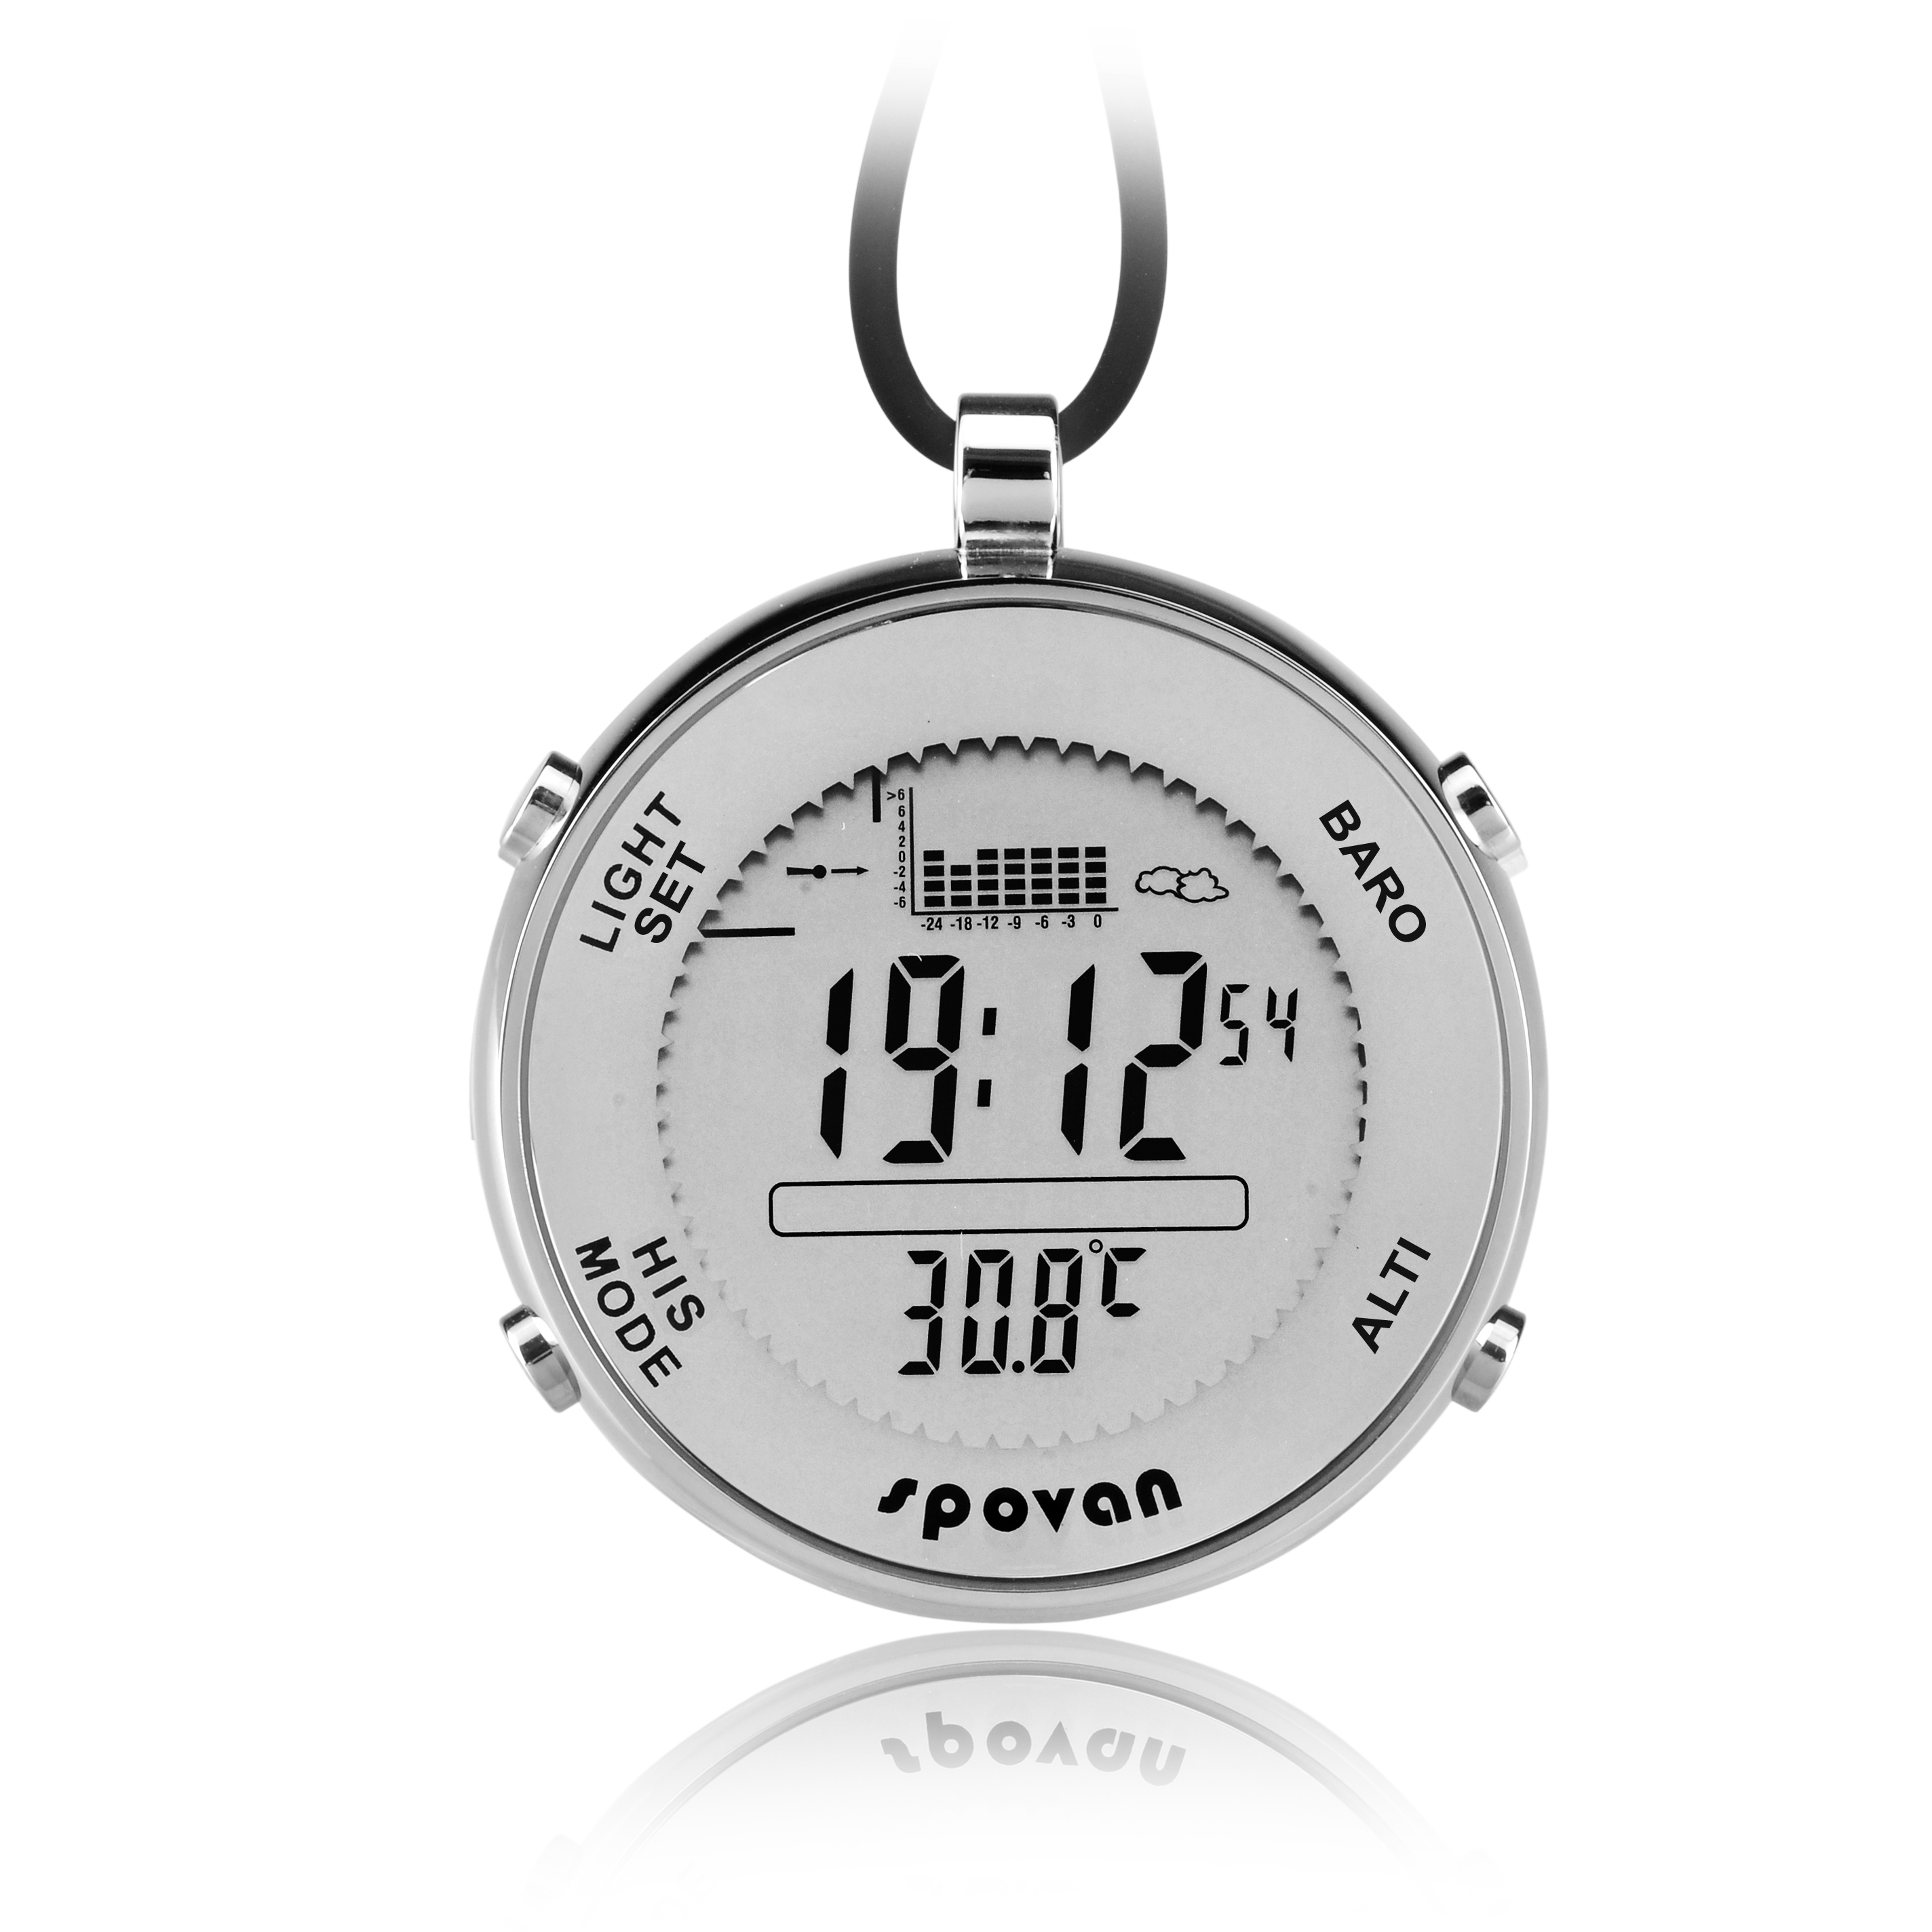 Multifunction Waterproof Spovan Watch Altimeter Compass Stopwatch Fishing Barometer Outdoor Sports Watch Men's Watches dl-o03 Watches